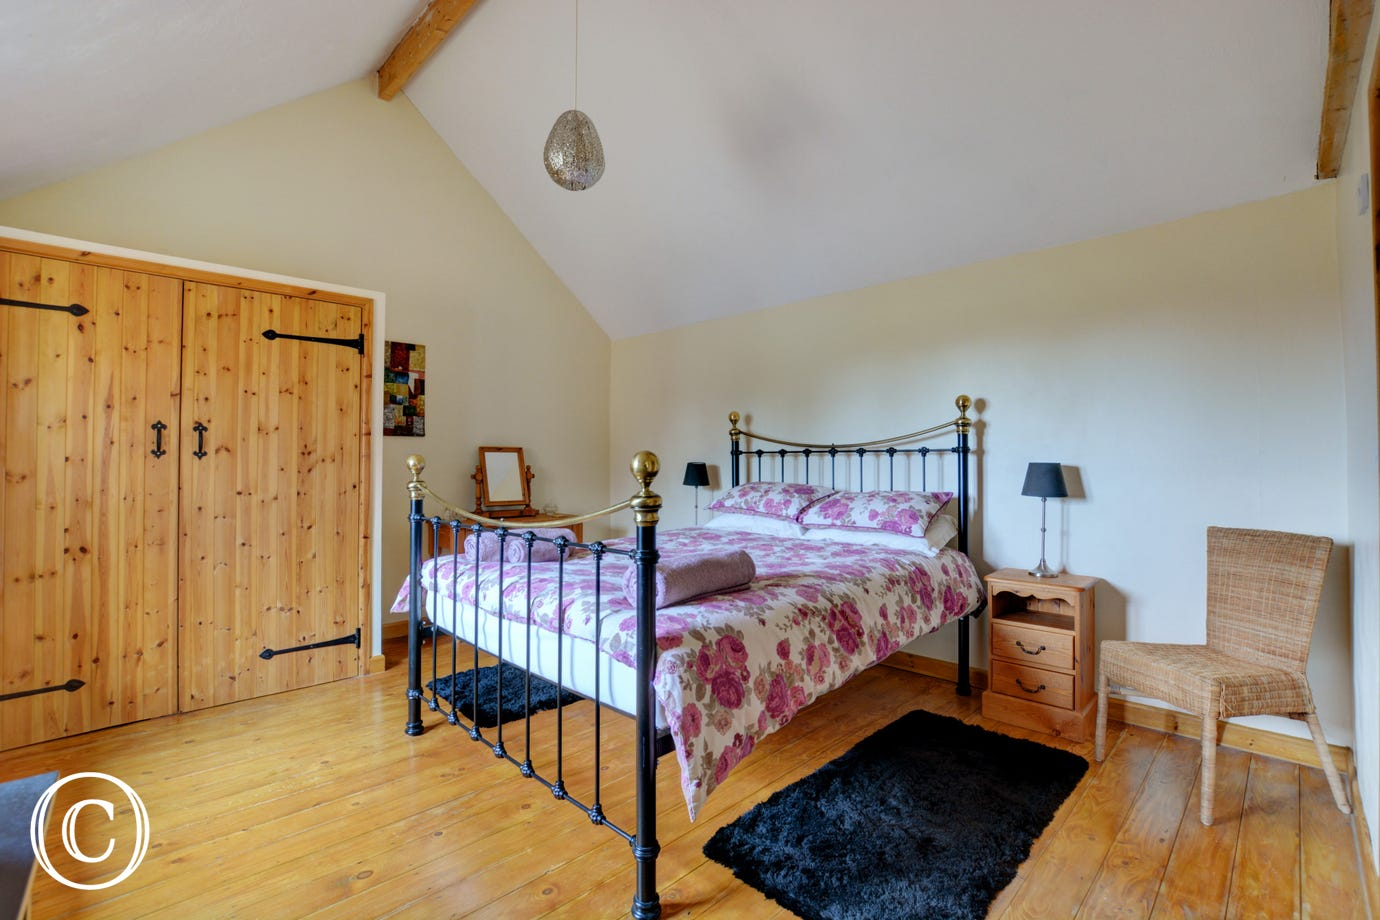 Double bedroom has plain linen with contrasting throw.  Plenty of storage in large pine wardrobe.  Wooden floors with rugs to the side of the bed for comfort.